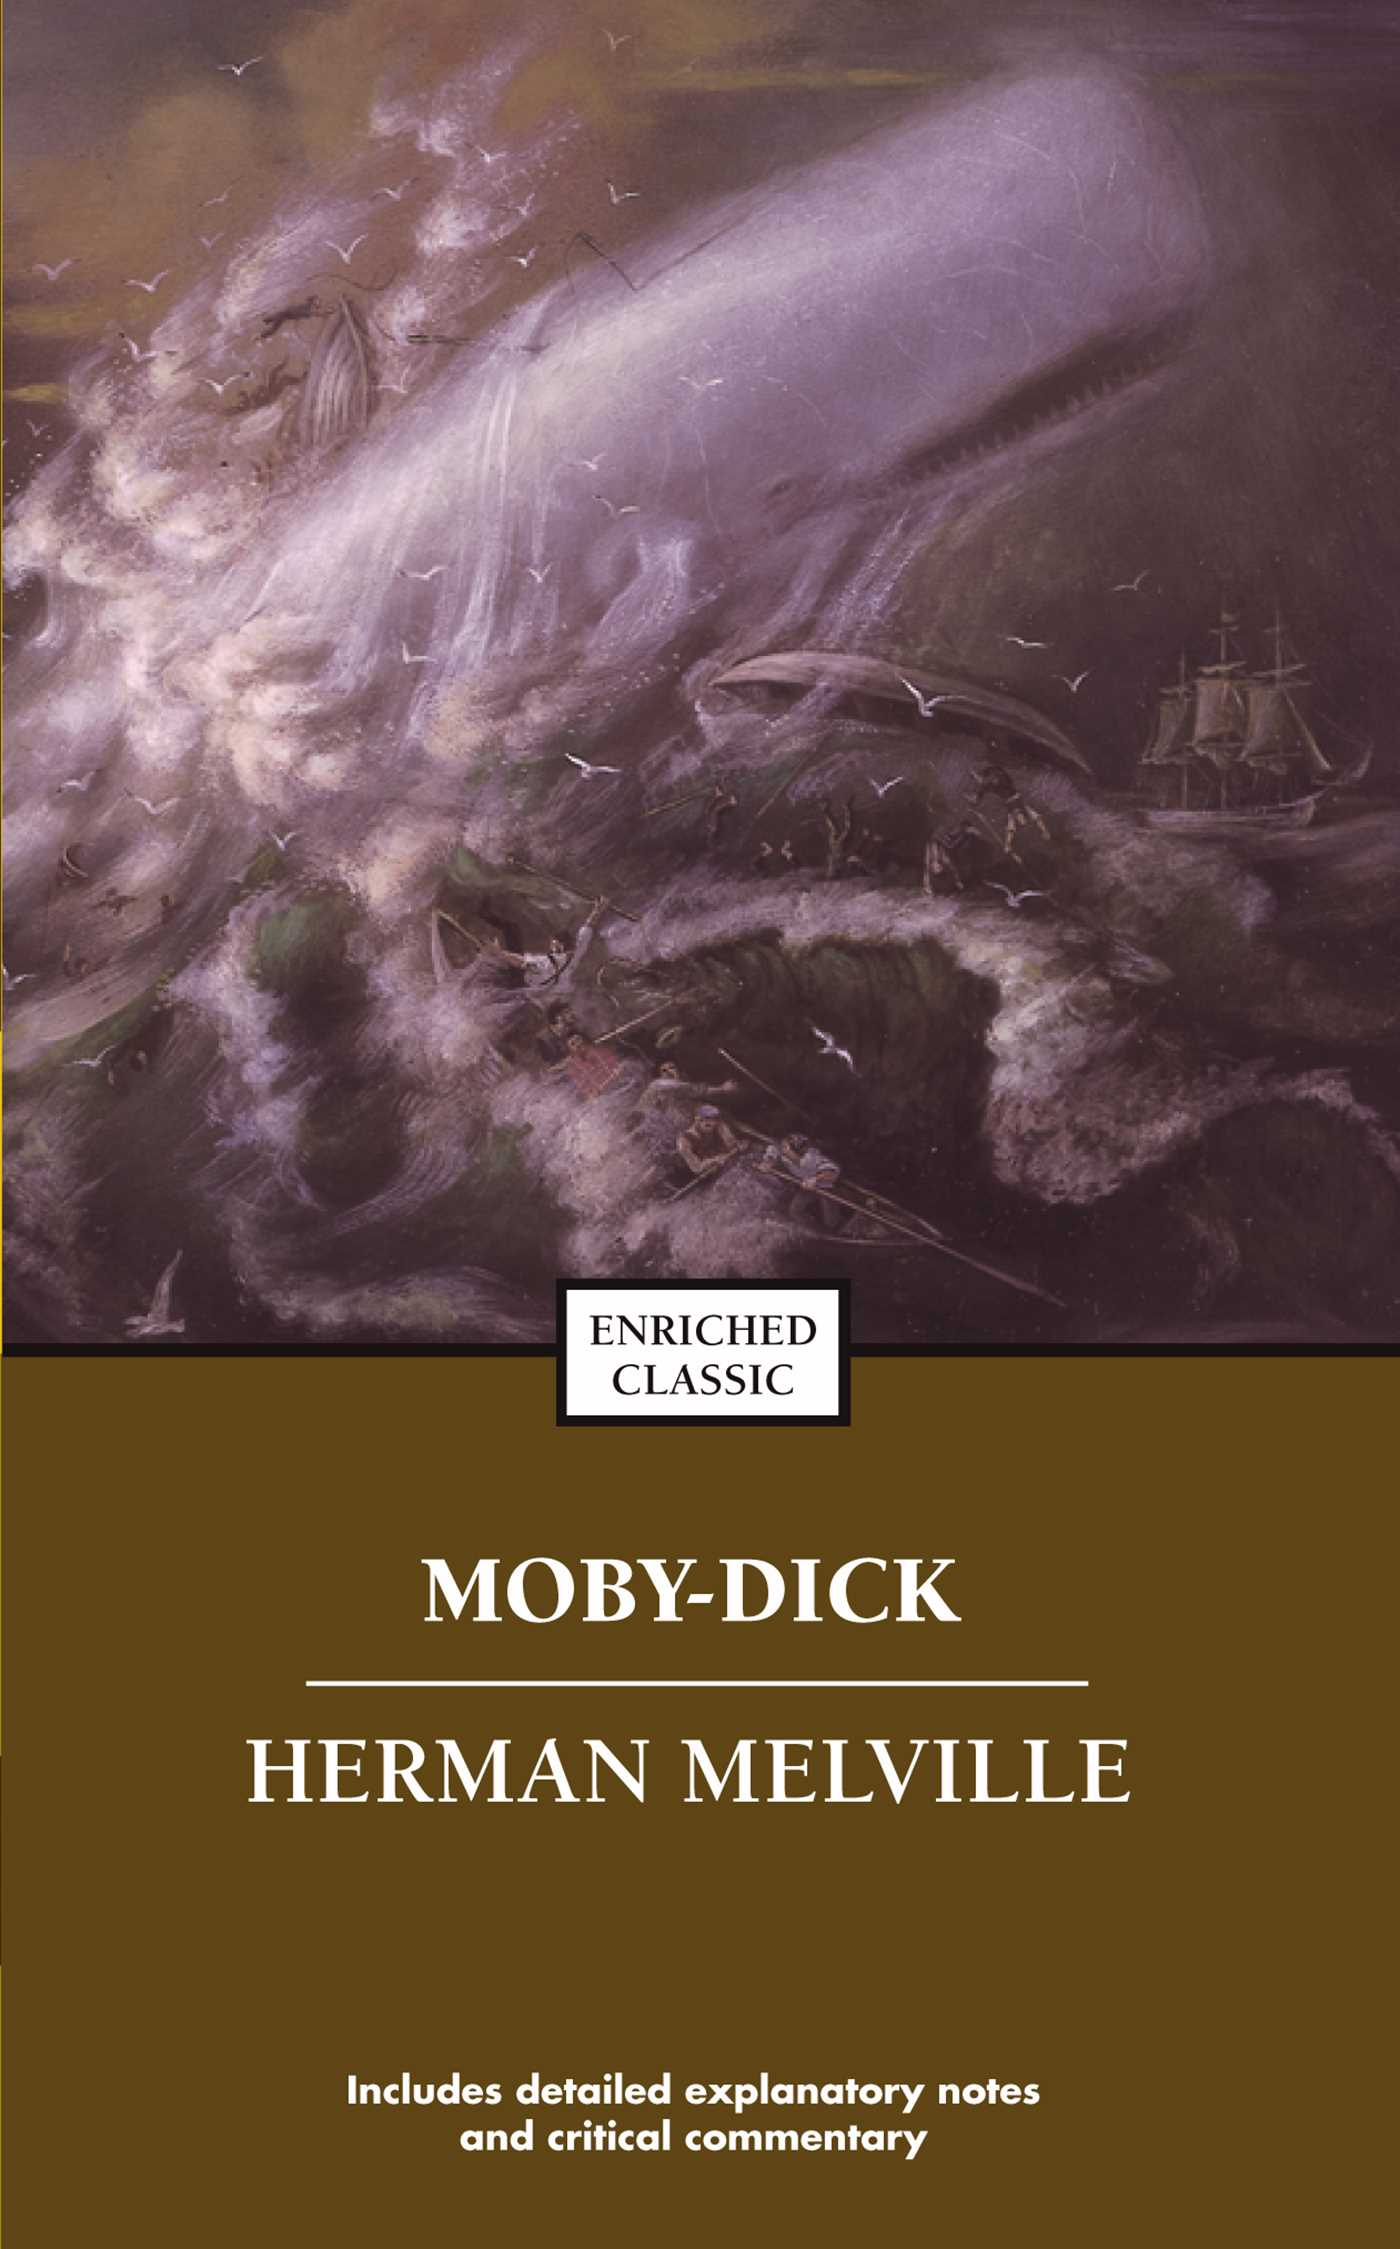 Moby dick 9781439117200 hr